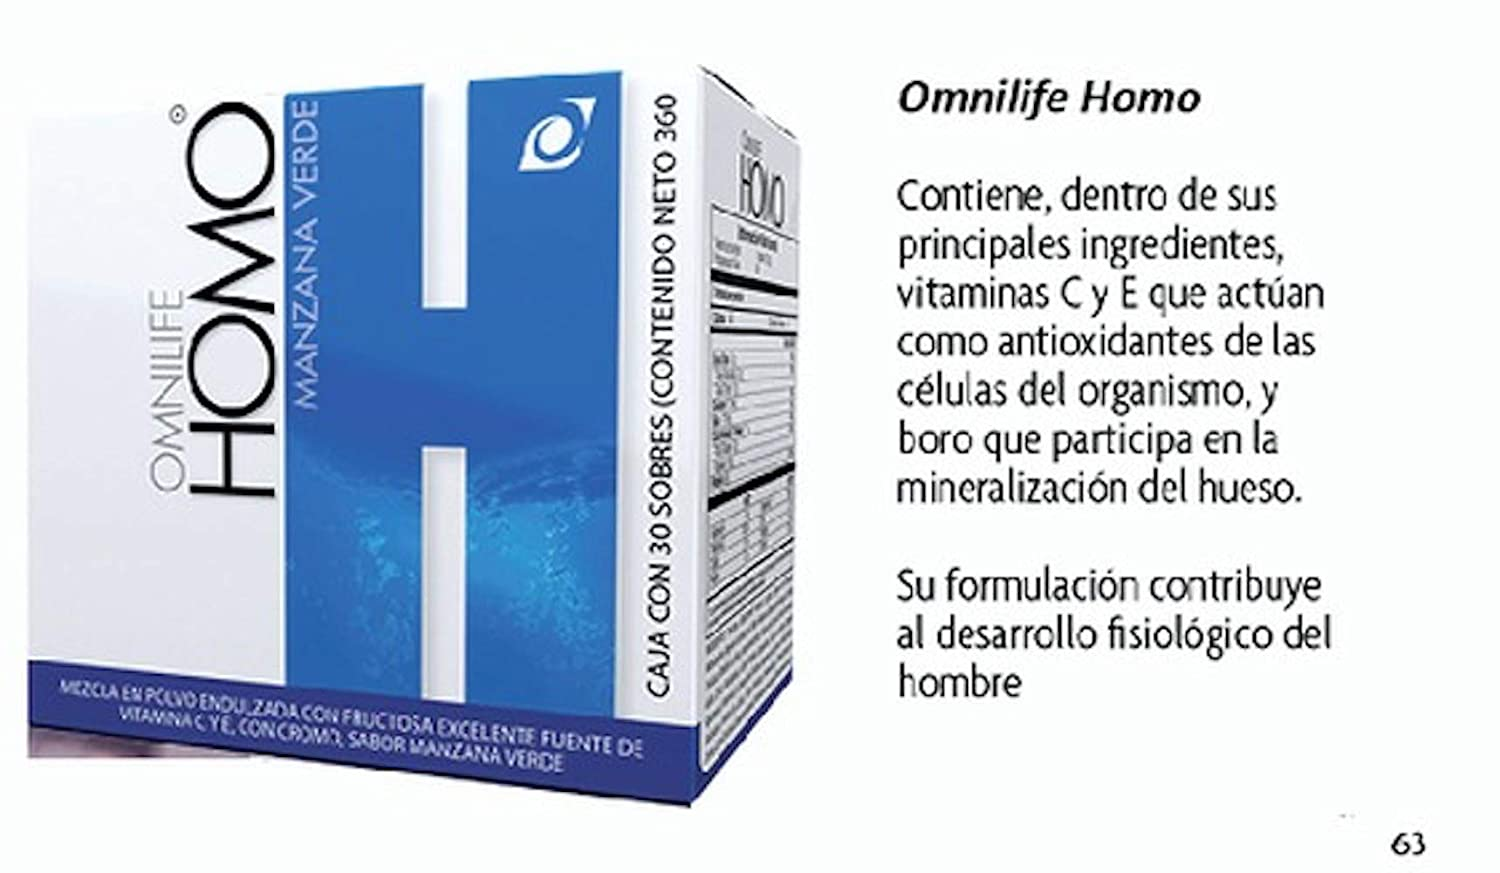 Amazon.com: Omnilife HOM Oml Plus Homo Men Hombre, Box with 30 Sachets (180G), Shipped by Liss: Health & Personal Care